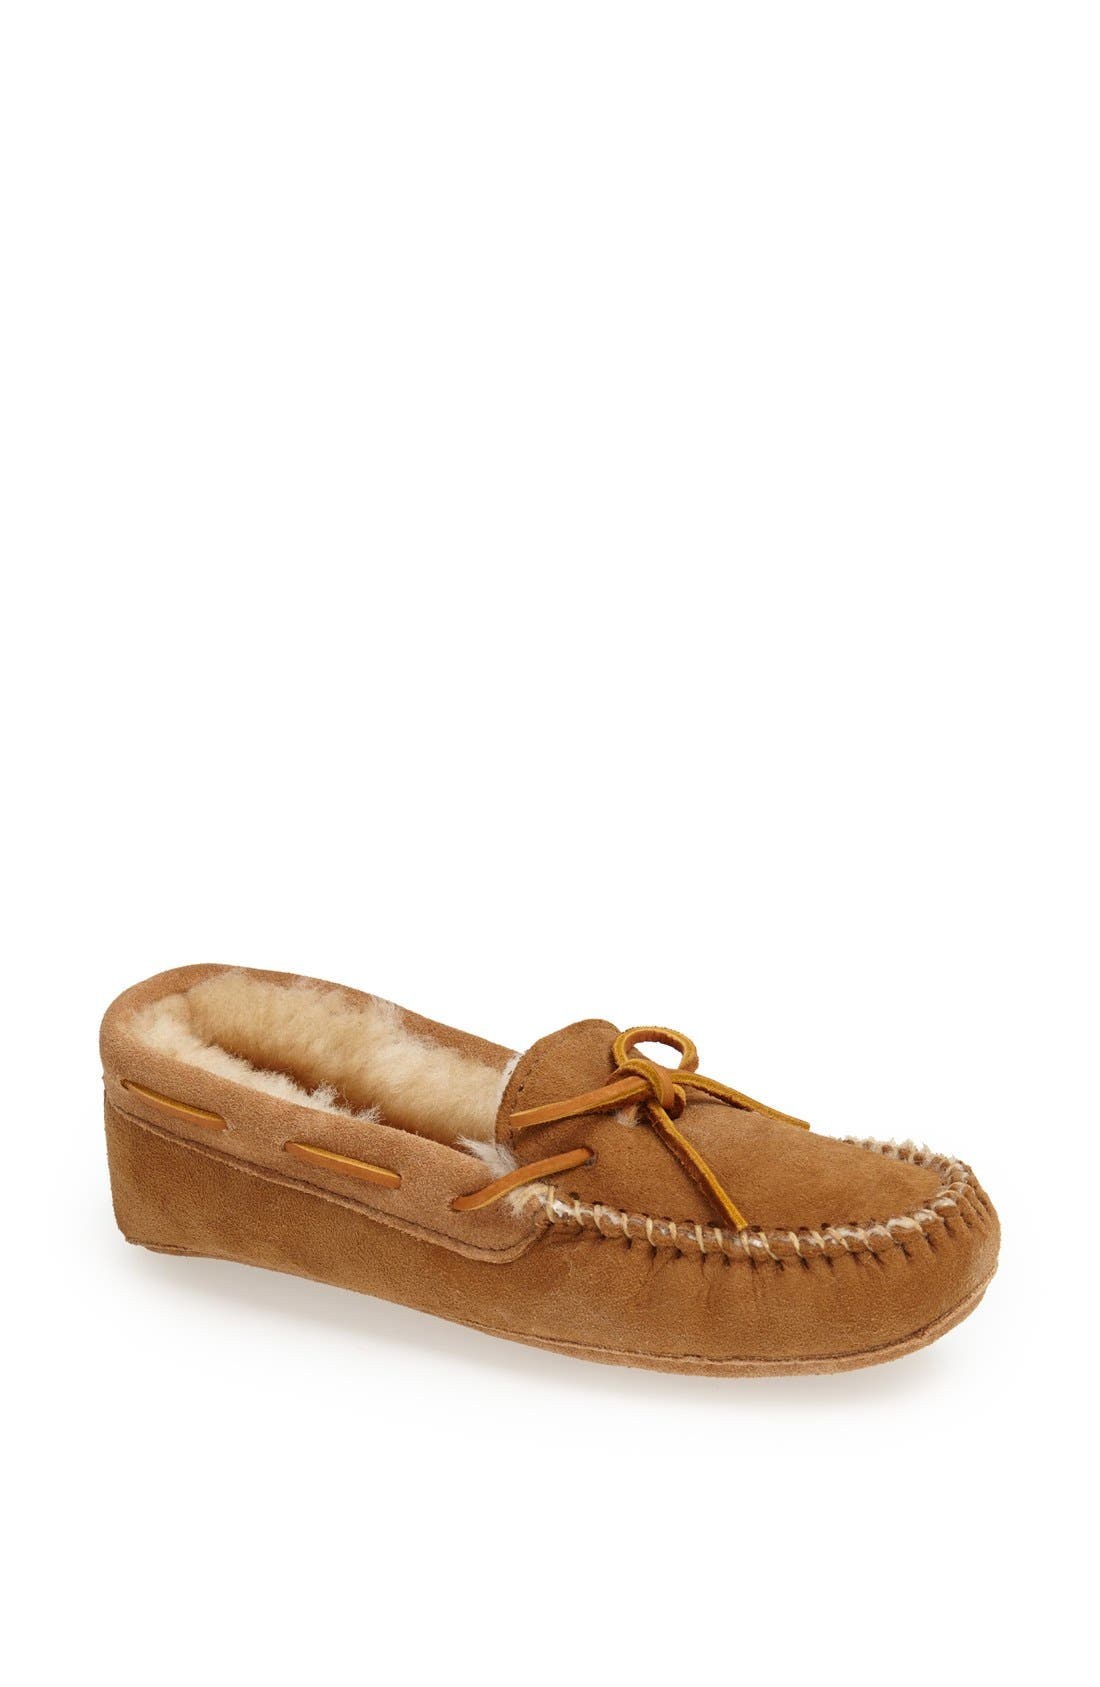 Alternate Image 1 Selected - Minnetonka Softsole Sheepskin Moccasin (Women)